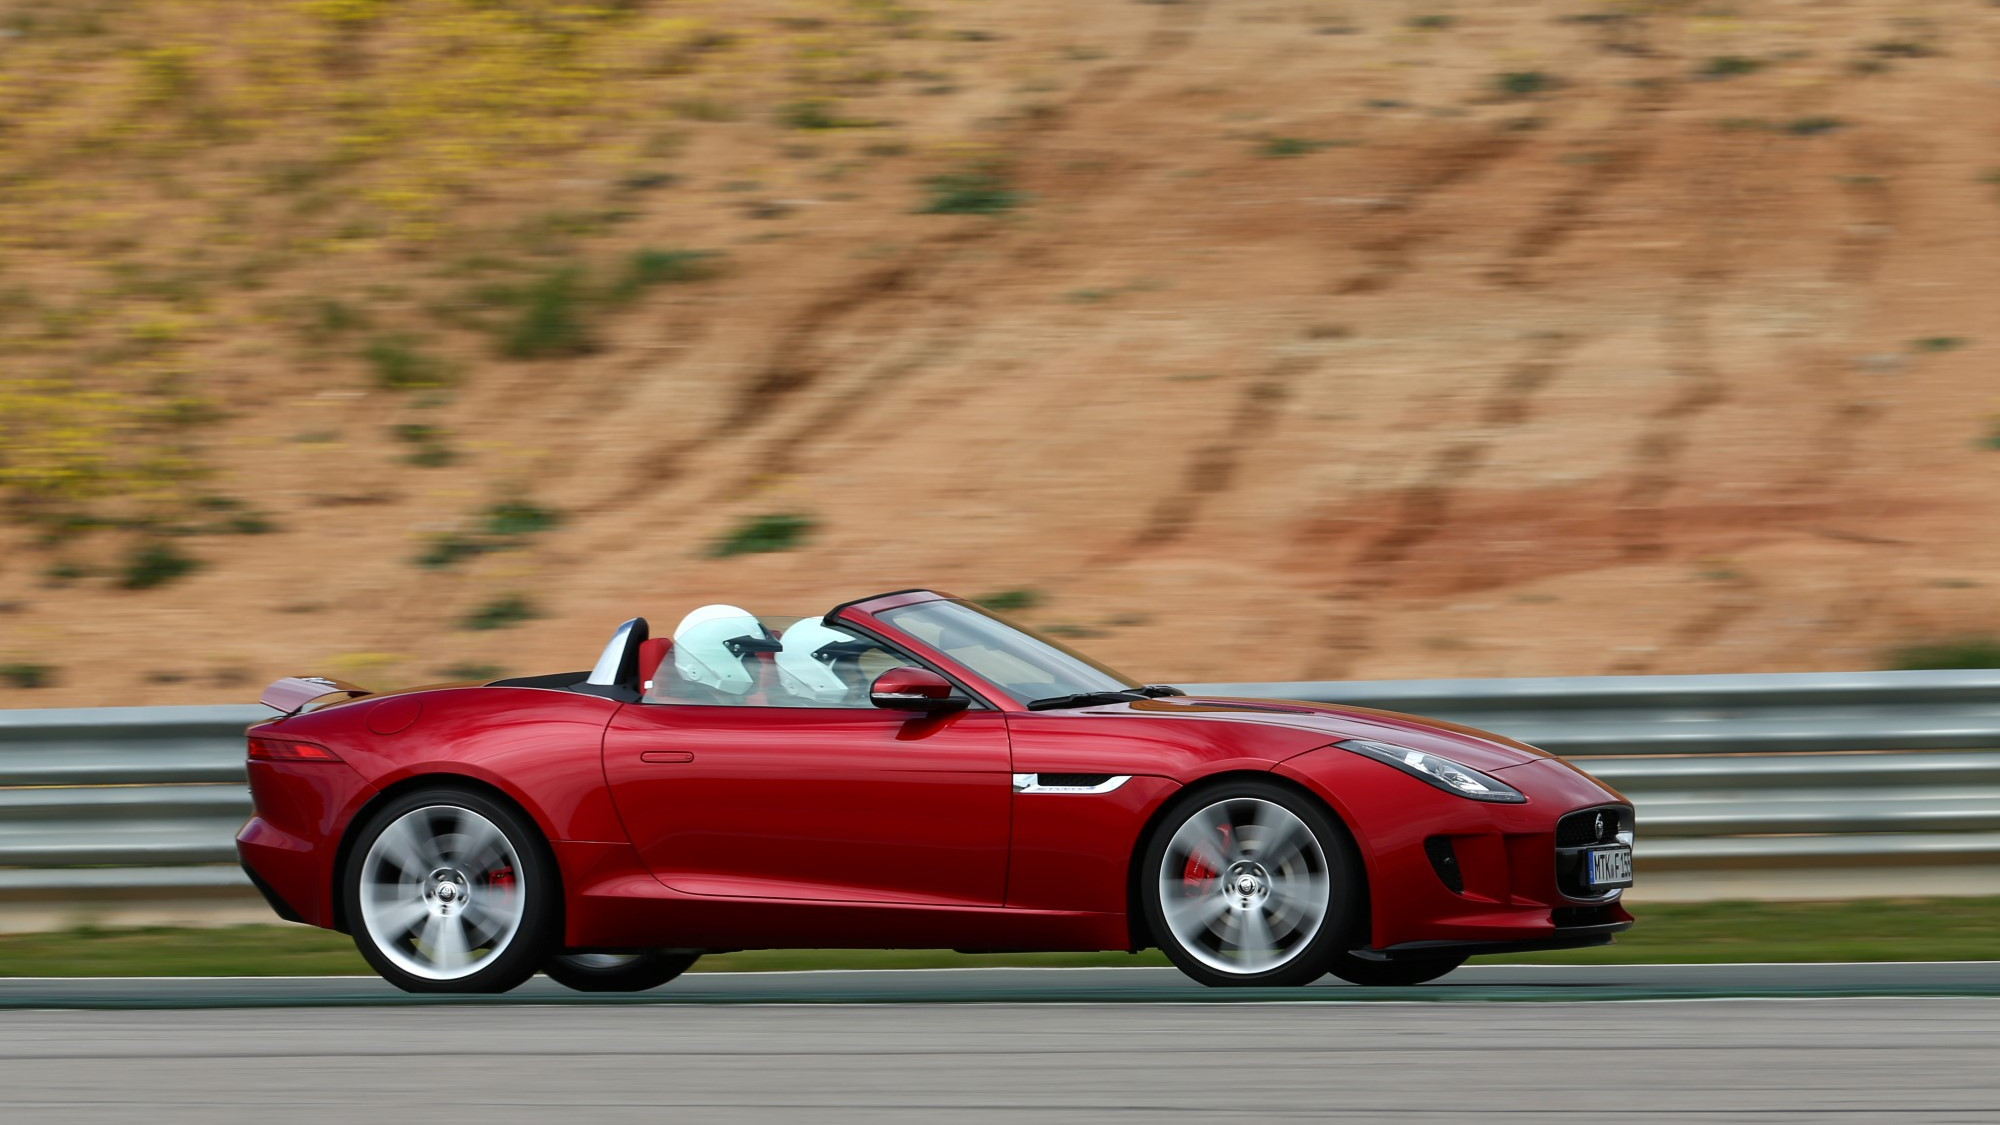 2014 Jaguar F-Type first drive